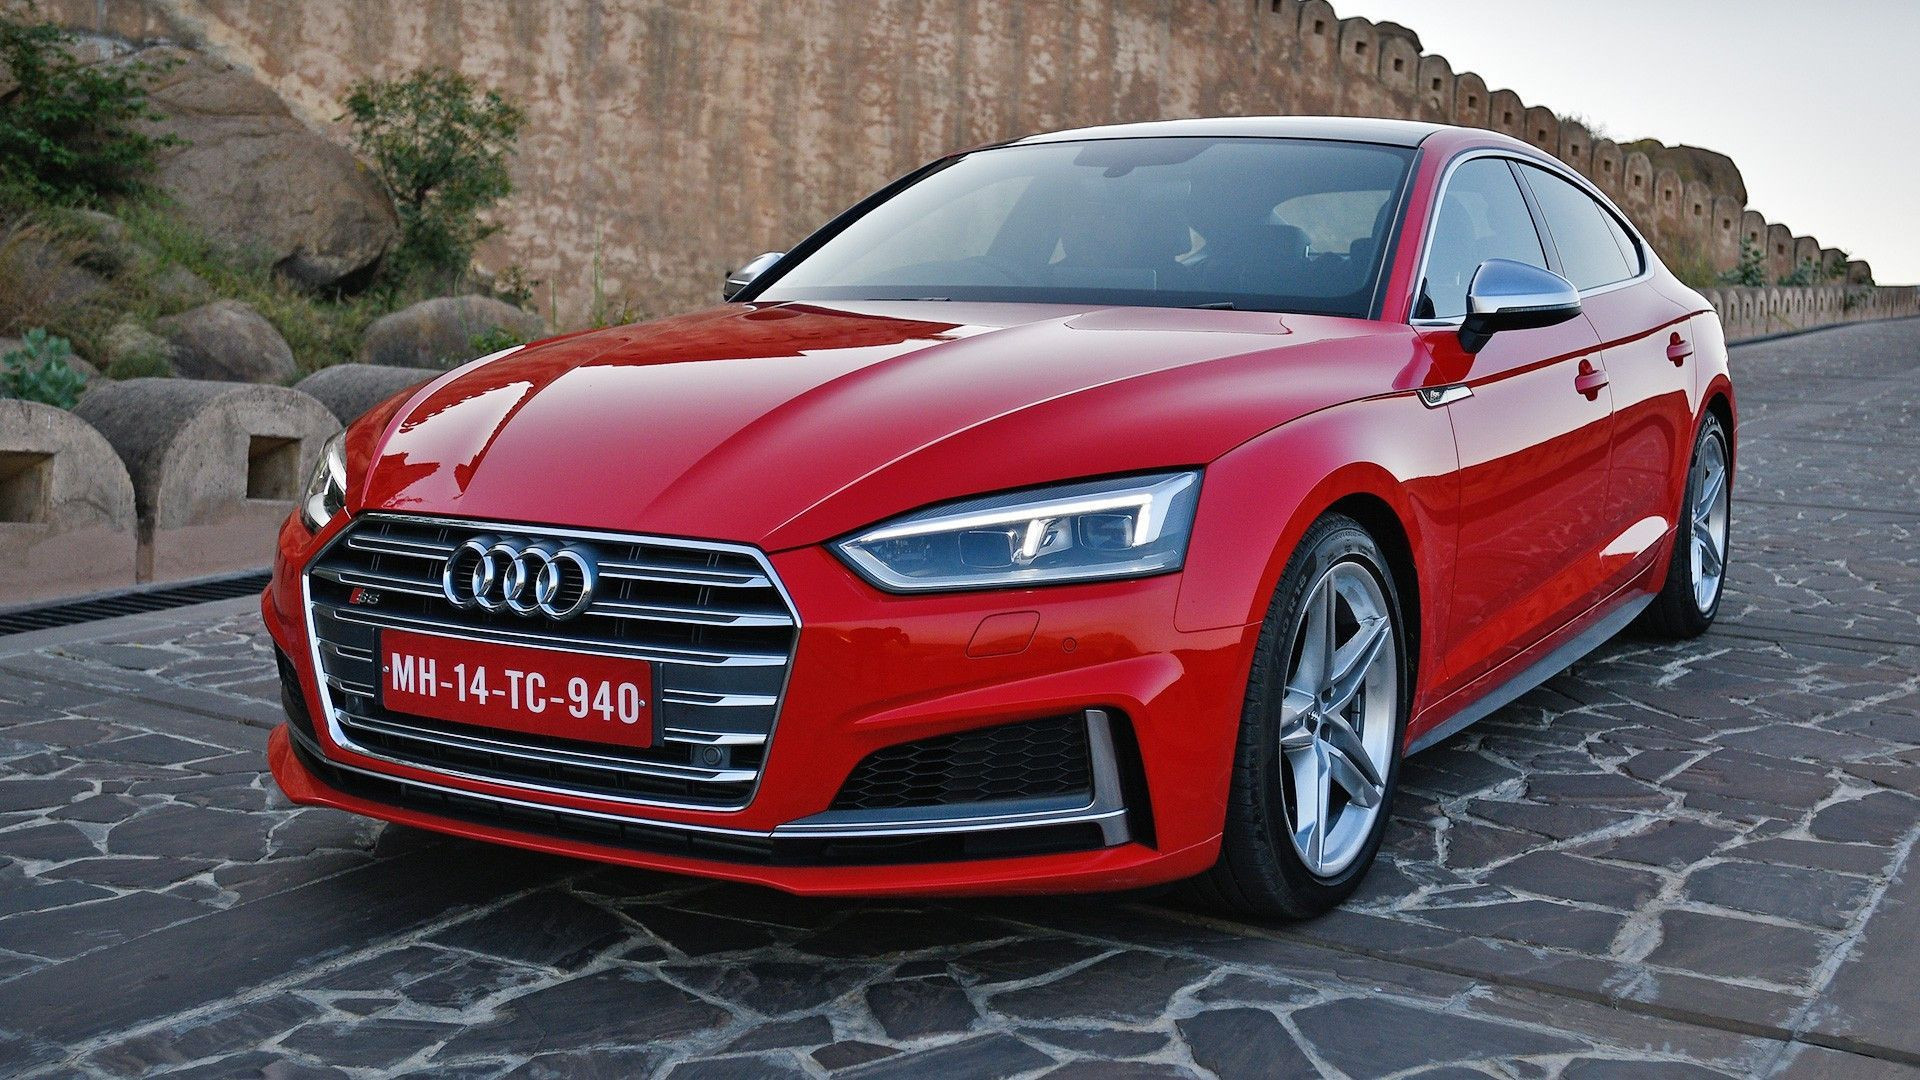 Best 2020 Audi A5 Coupe New Release | Cars New | Audi s5, Audi, Audi a5 coupe